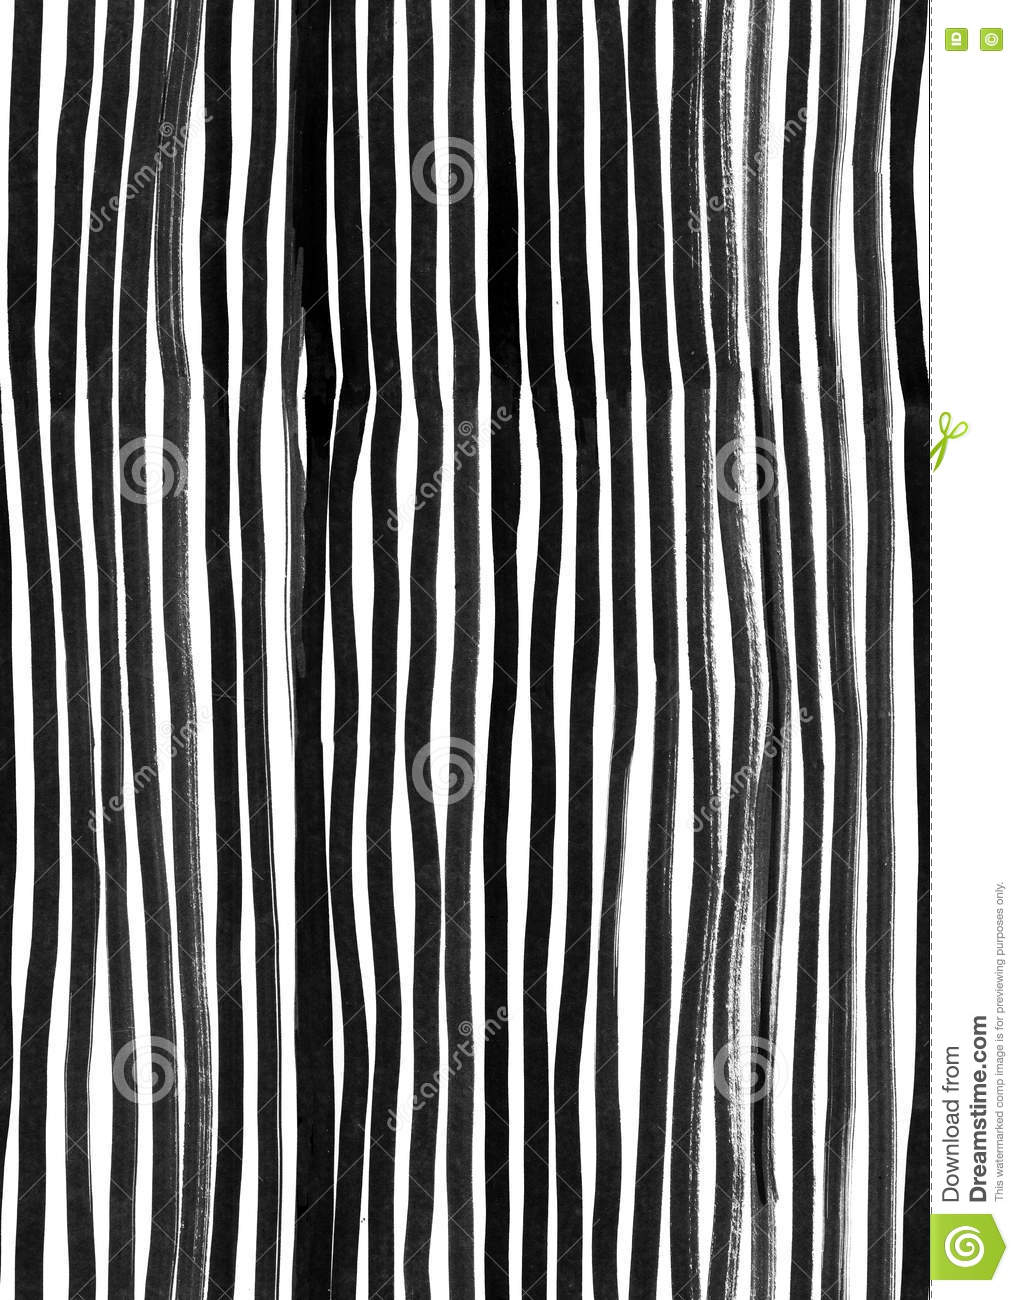 Ink Seamless Line Pattern. Abstract print with brush strokes. Monochrome hand drawn texture. Artistic tileable black and